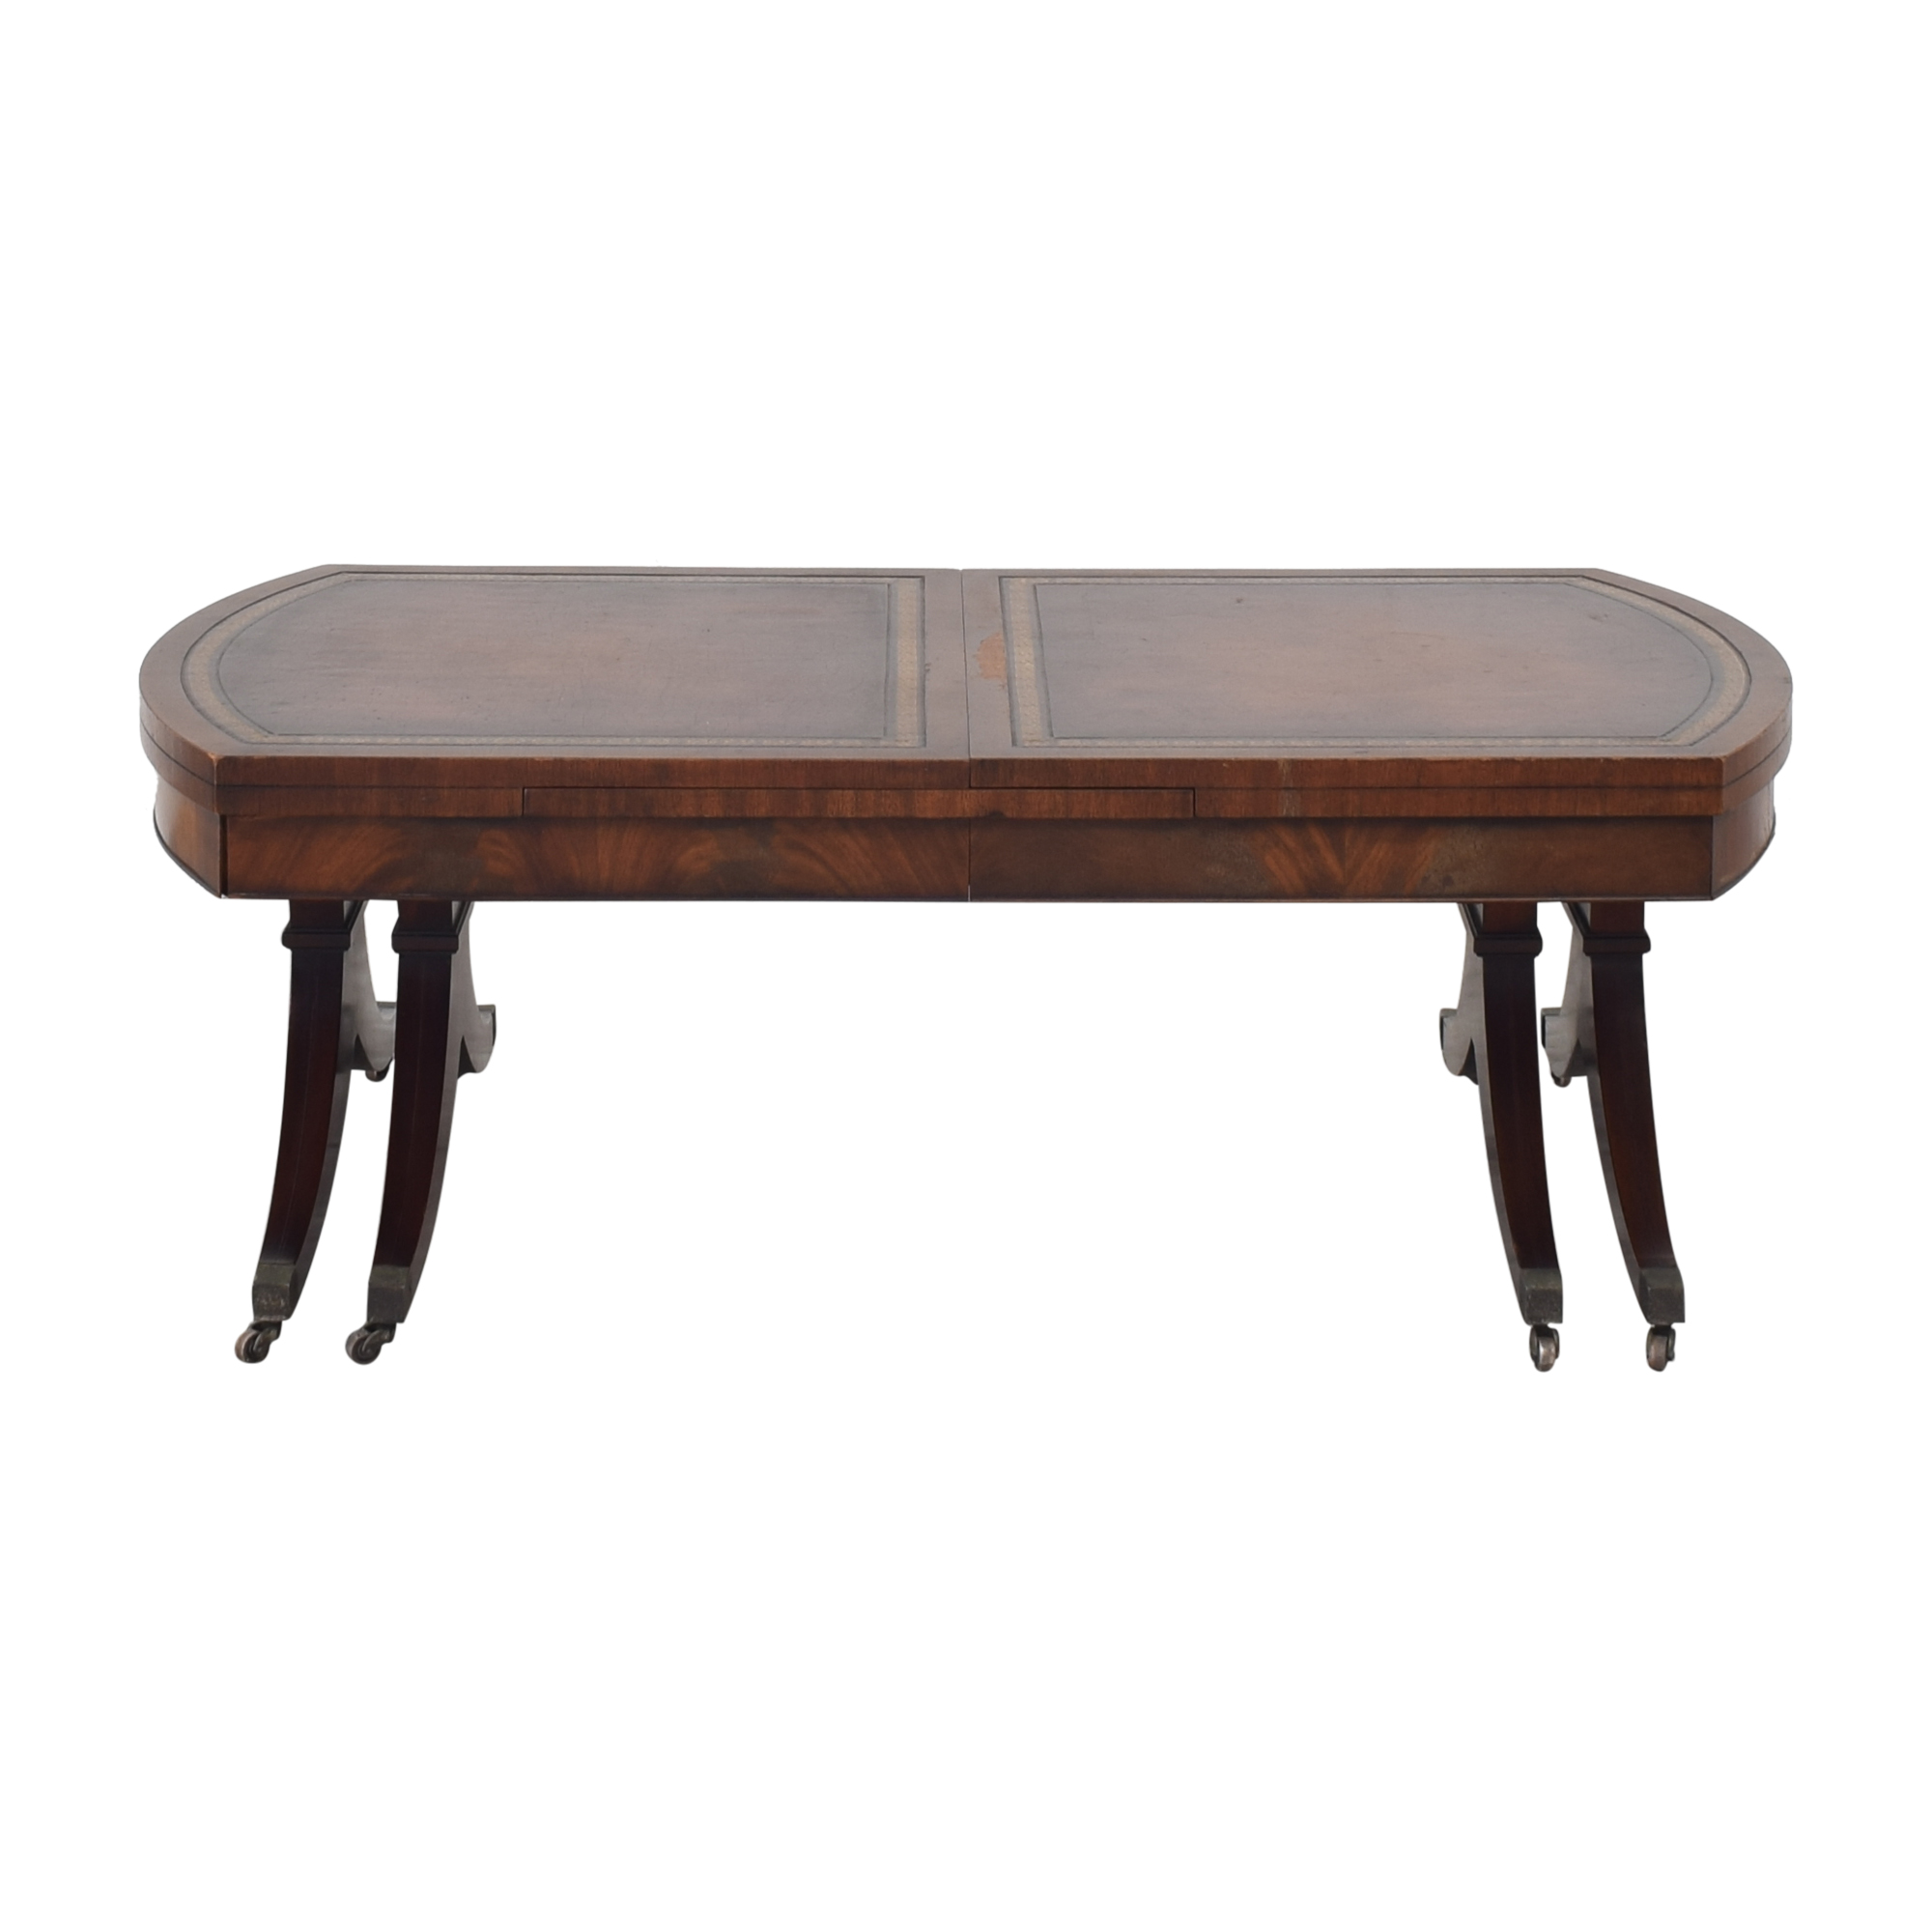 Heirloom Weiman Extendable Coffee Table nyc